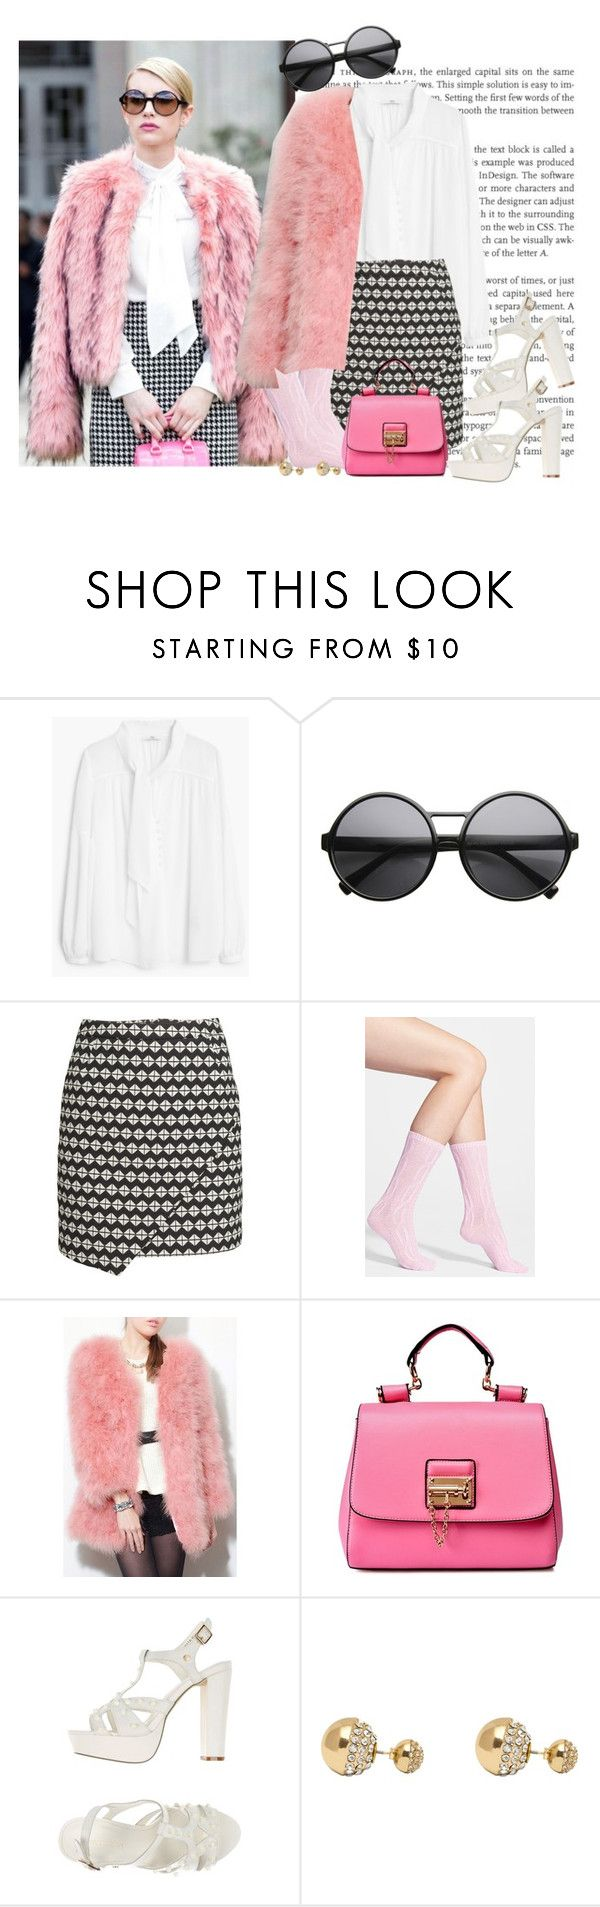 """""""Scream Queens: Chanel Oberlin"""" by fashionbrownies ❤ liked on Polyvore featuring MANGO, H&M, Nordstrom, Silvian Heach, Adele Marie and halloweencostume"""